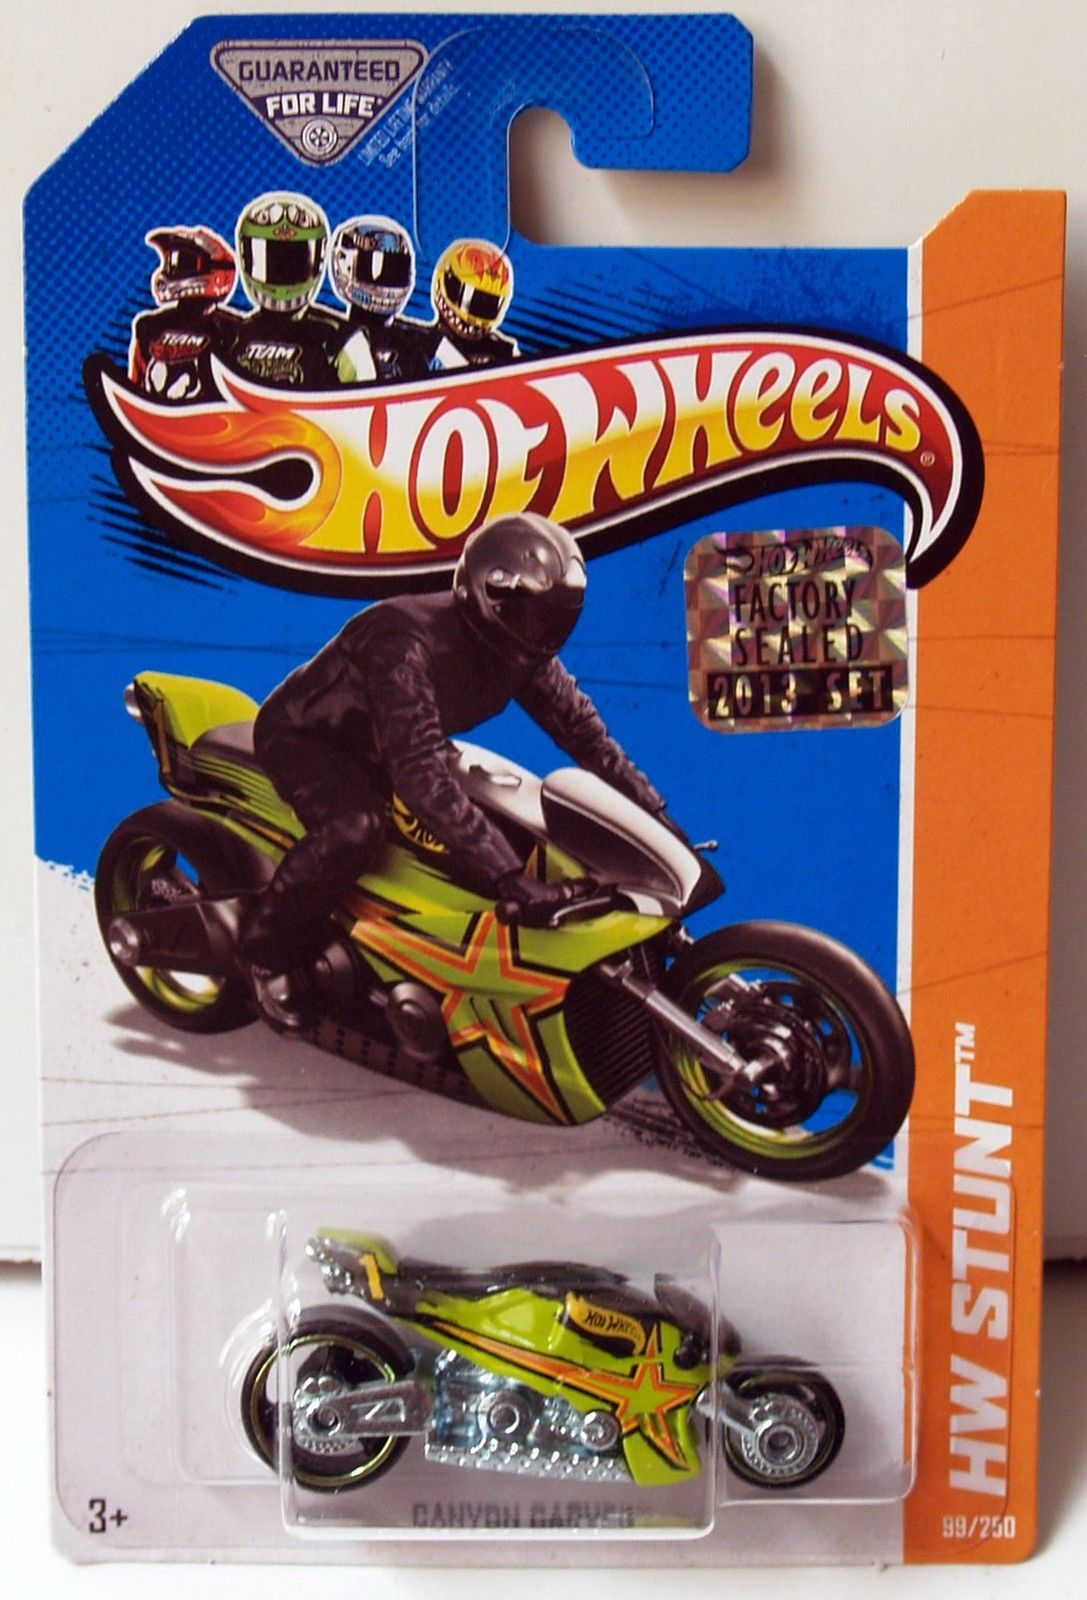 HOT WHEELS 2013 HW STUNT - HW MOTO CANYON CARVER GREEN FACTORY SEALED